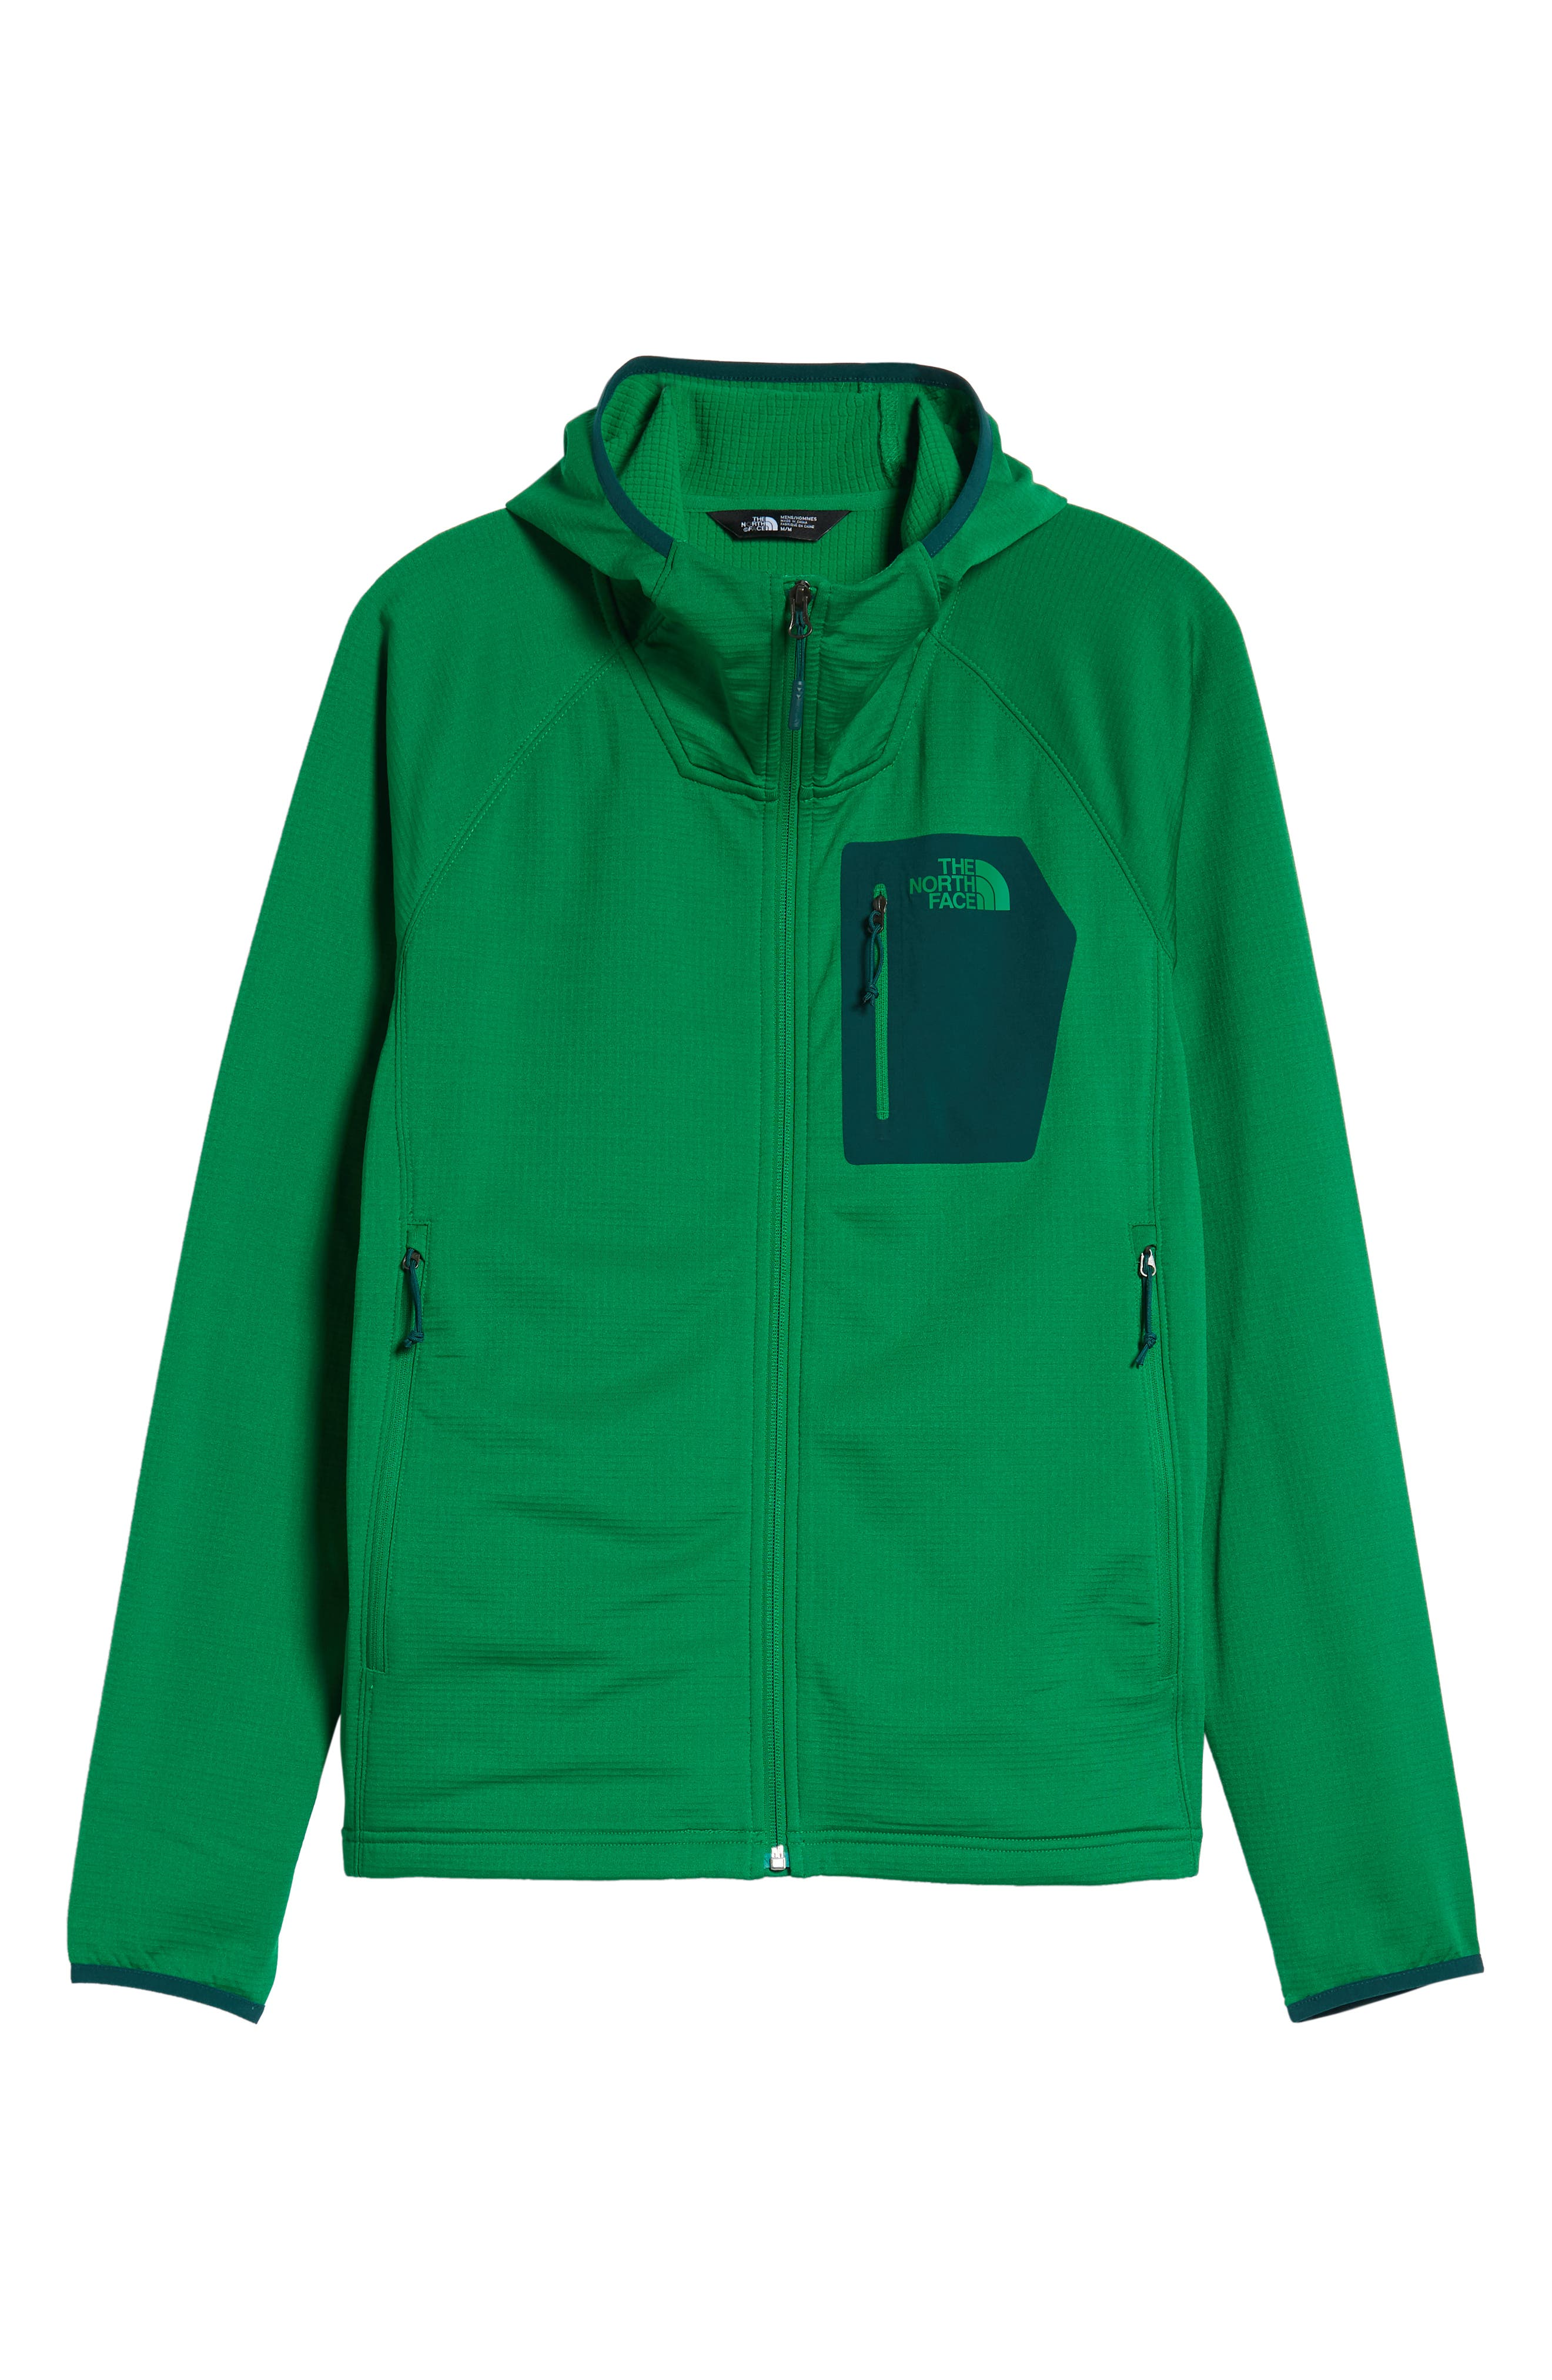 THE NORTH FACE, Borod Zip Fleece Jacket, Alternate thumbnail 7, color, 301